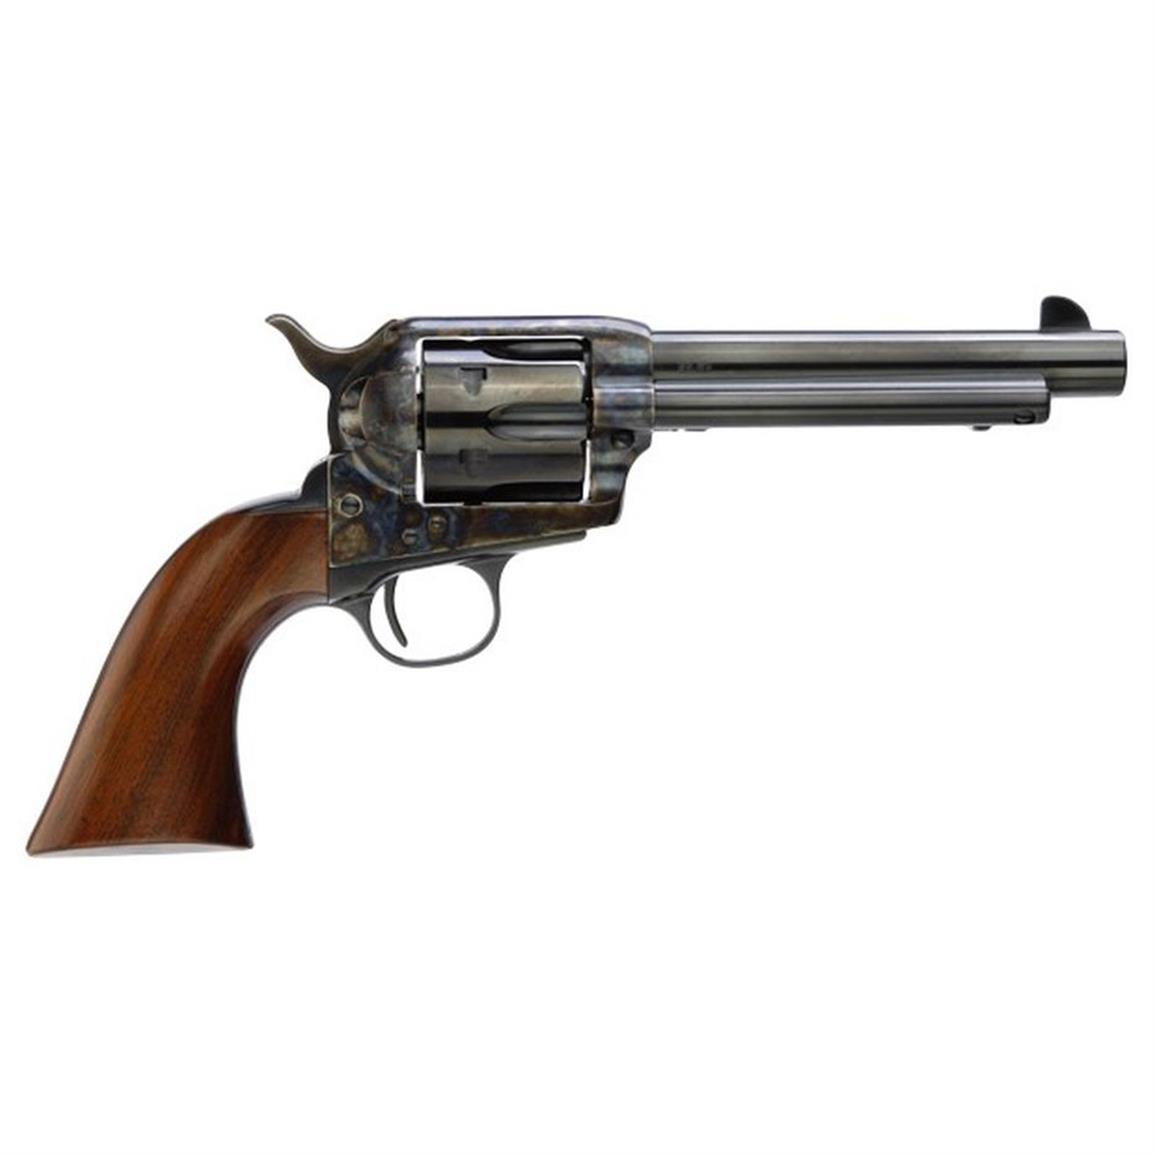 "Taylor's & Co. Uberti Gunfighter, Revolver, .357 Magnum, 5.5"" Barrel, 6 Rounds"